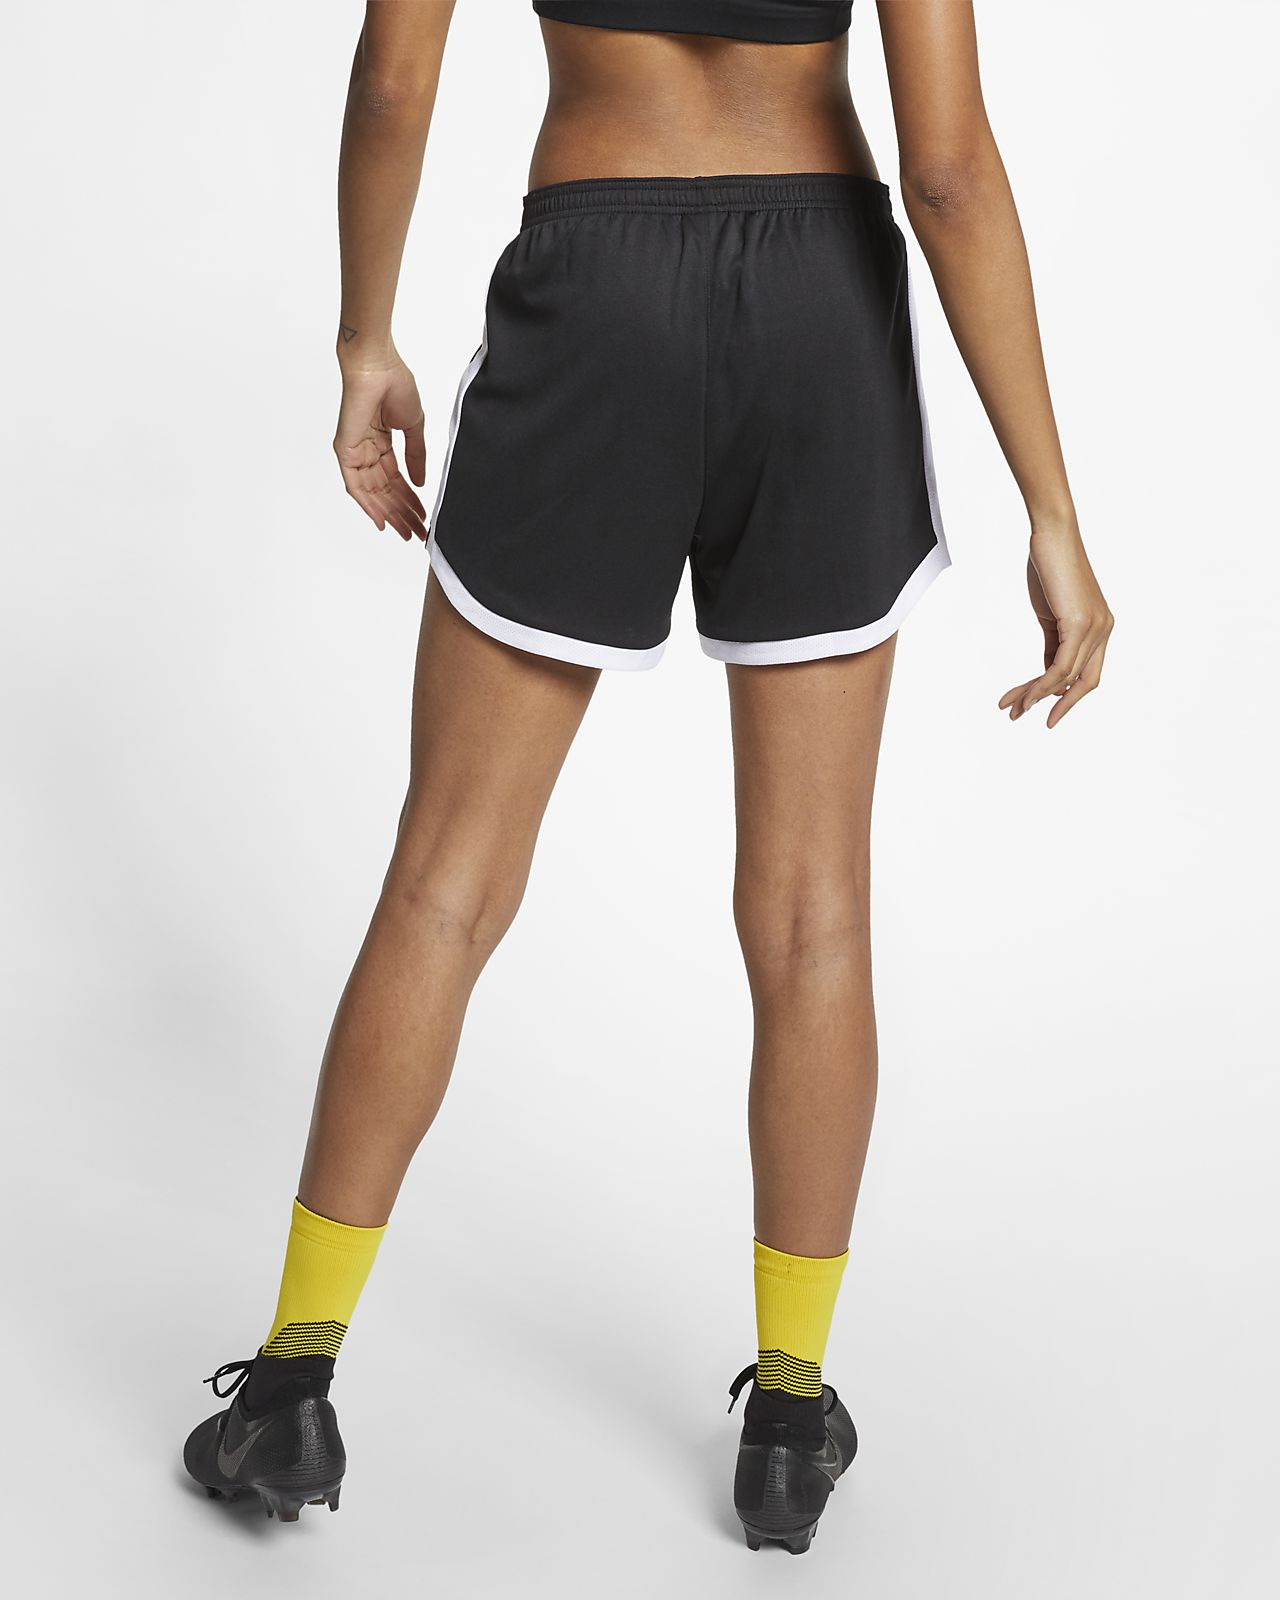 official site save off newest collection De Pour Nike Football Fit Dri FemmeBe Short Academy nOP0kw8